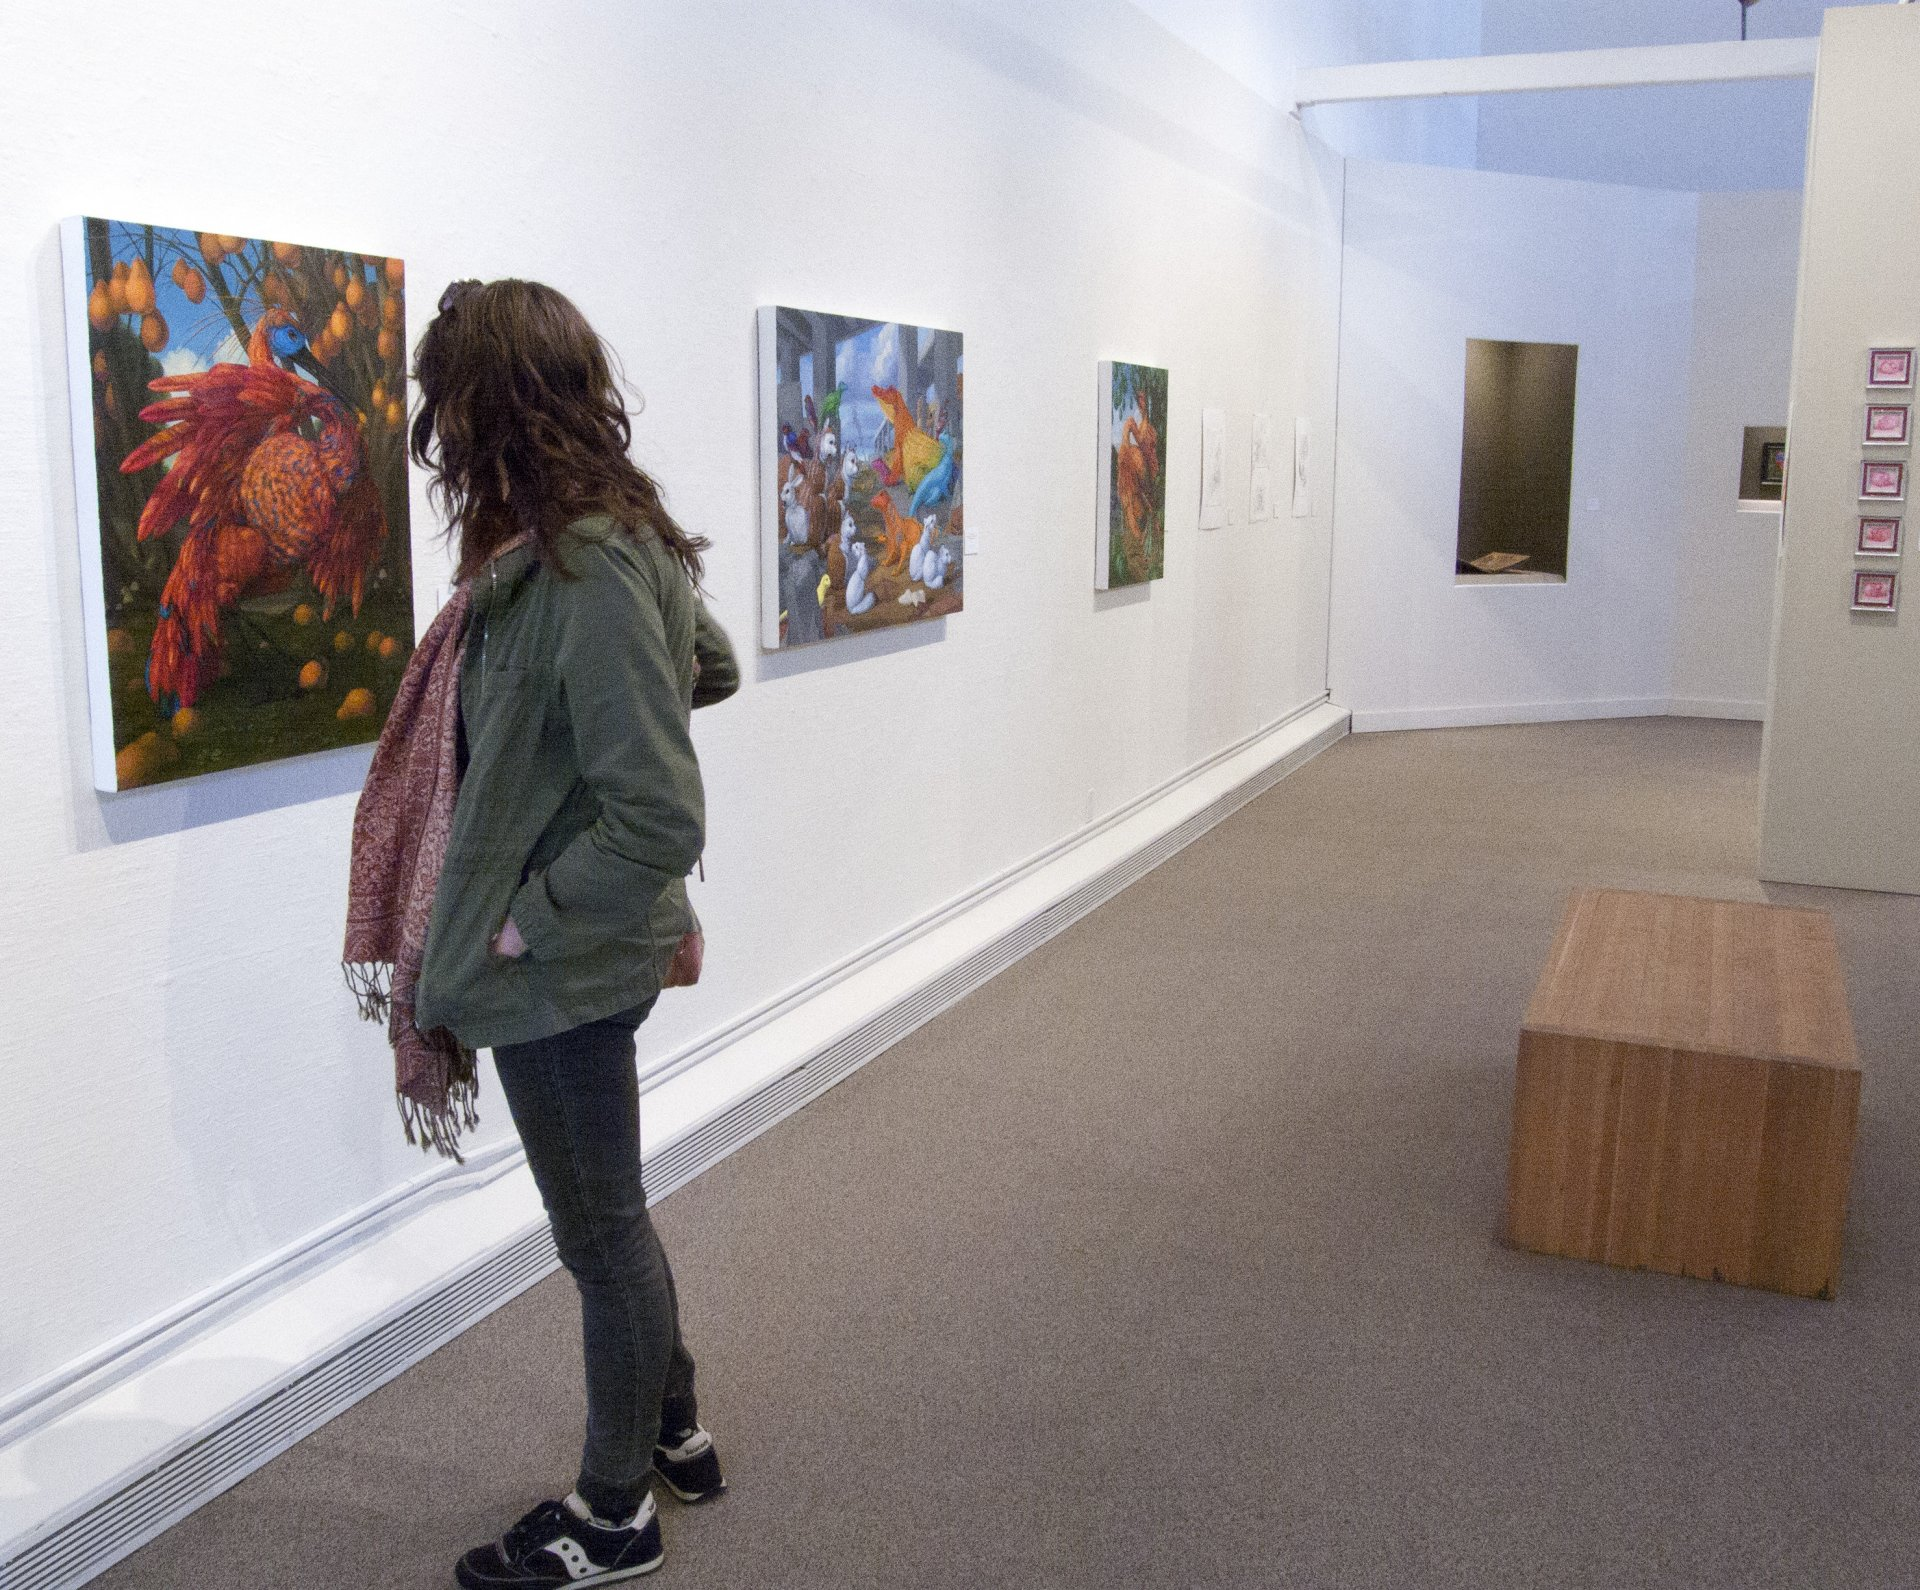 HSU alumnus Ariana Hendren admires a painting by Laurie Hogin at the Reese Bullen Gallery on  March 14. Photo by Matthew Hable.